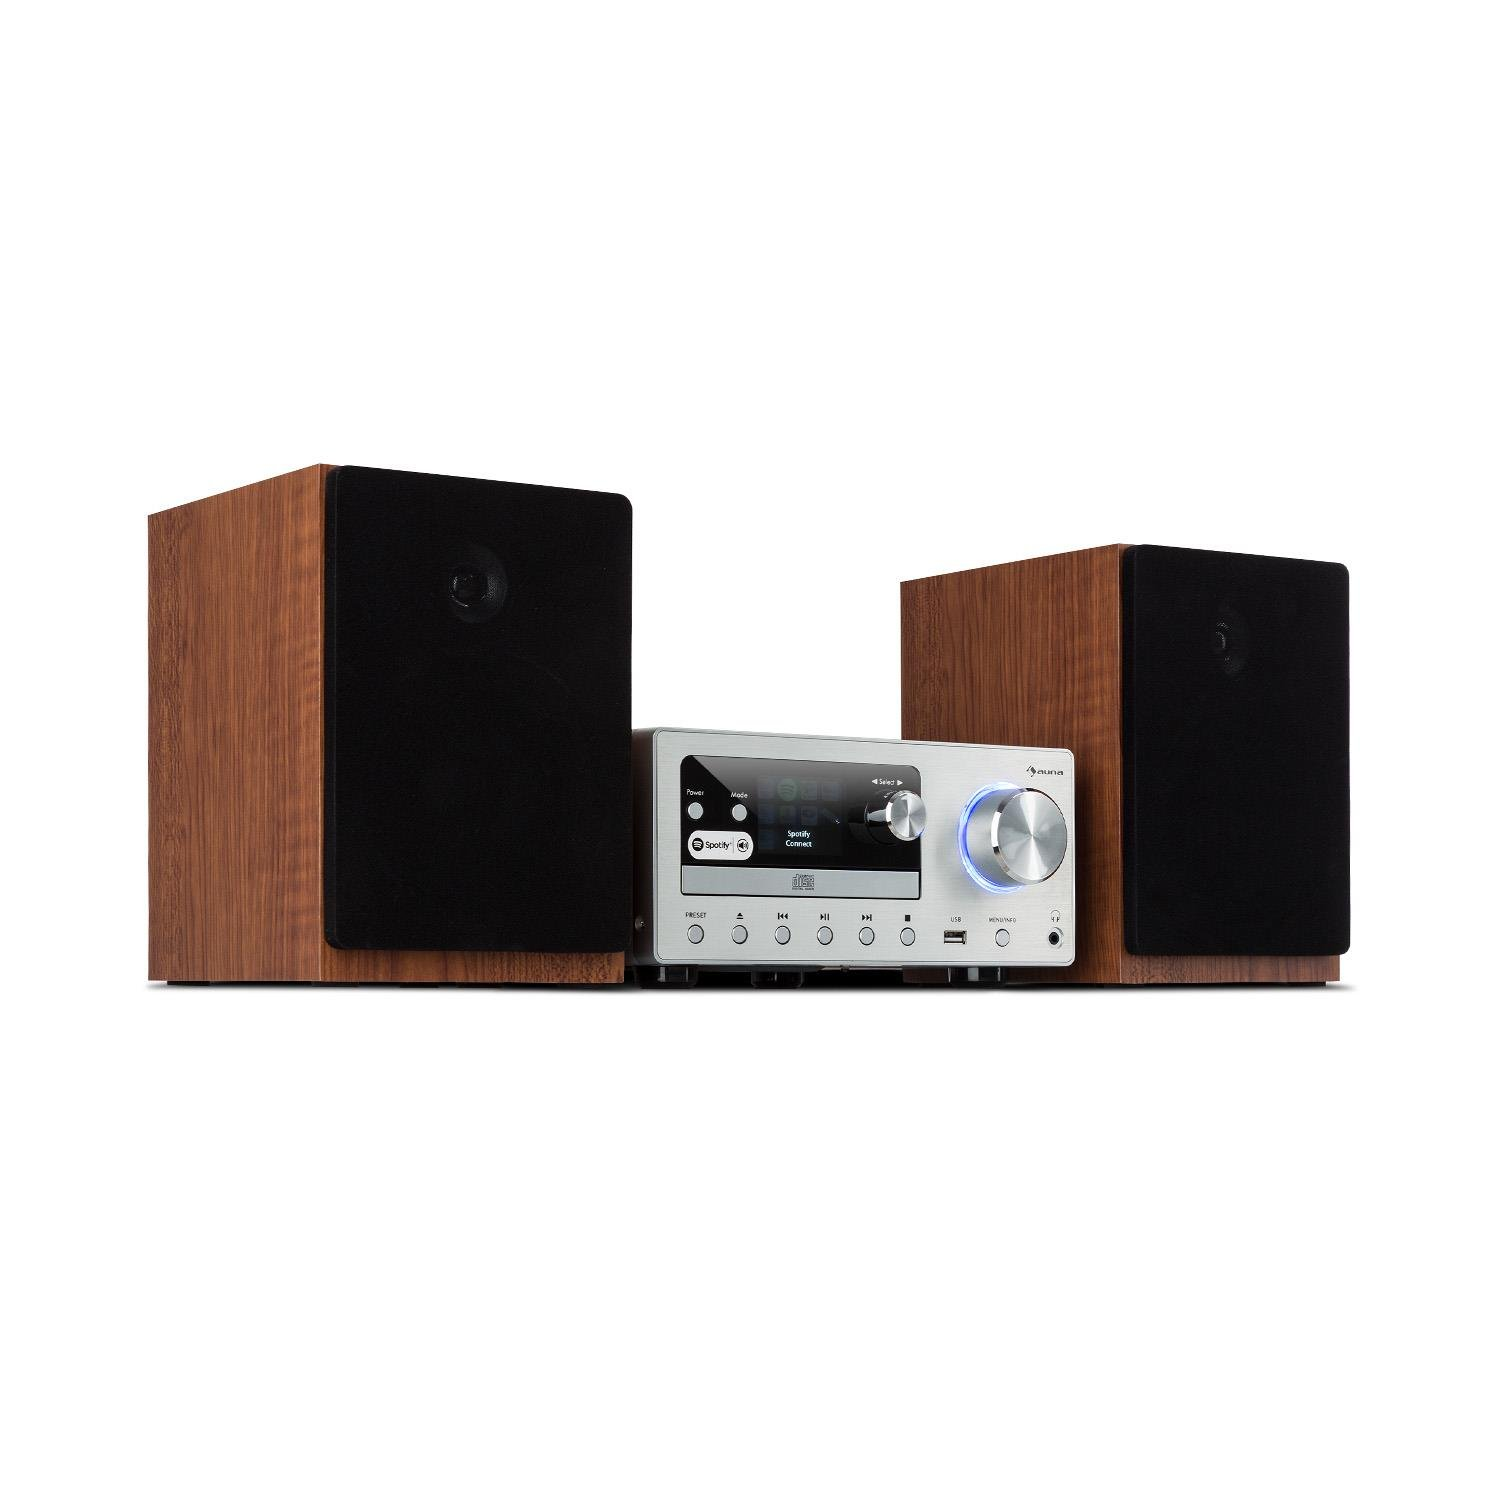 // FM Radio AUNA Connect System Stereo System Deluxe Edition Spotify Connect incl Internet//DAB Silver Compact System 80 W Max Infrared Remote Control CD Player Bluetooth Music System USB